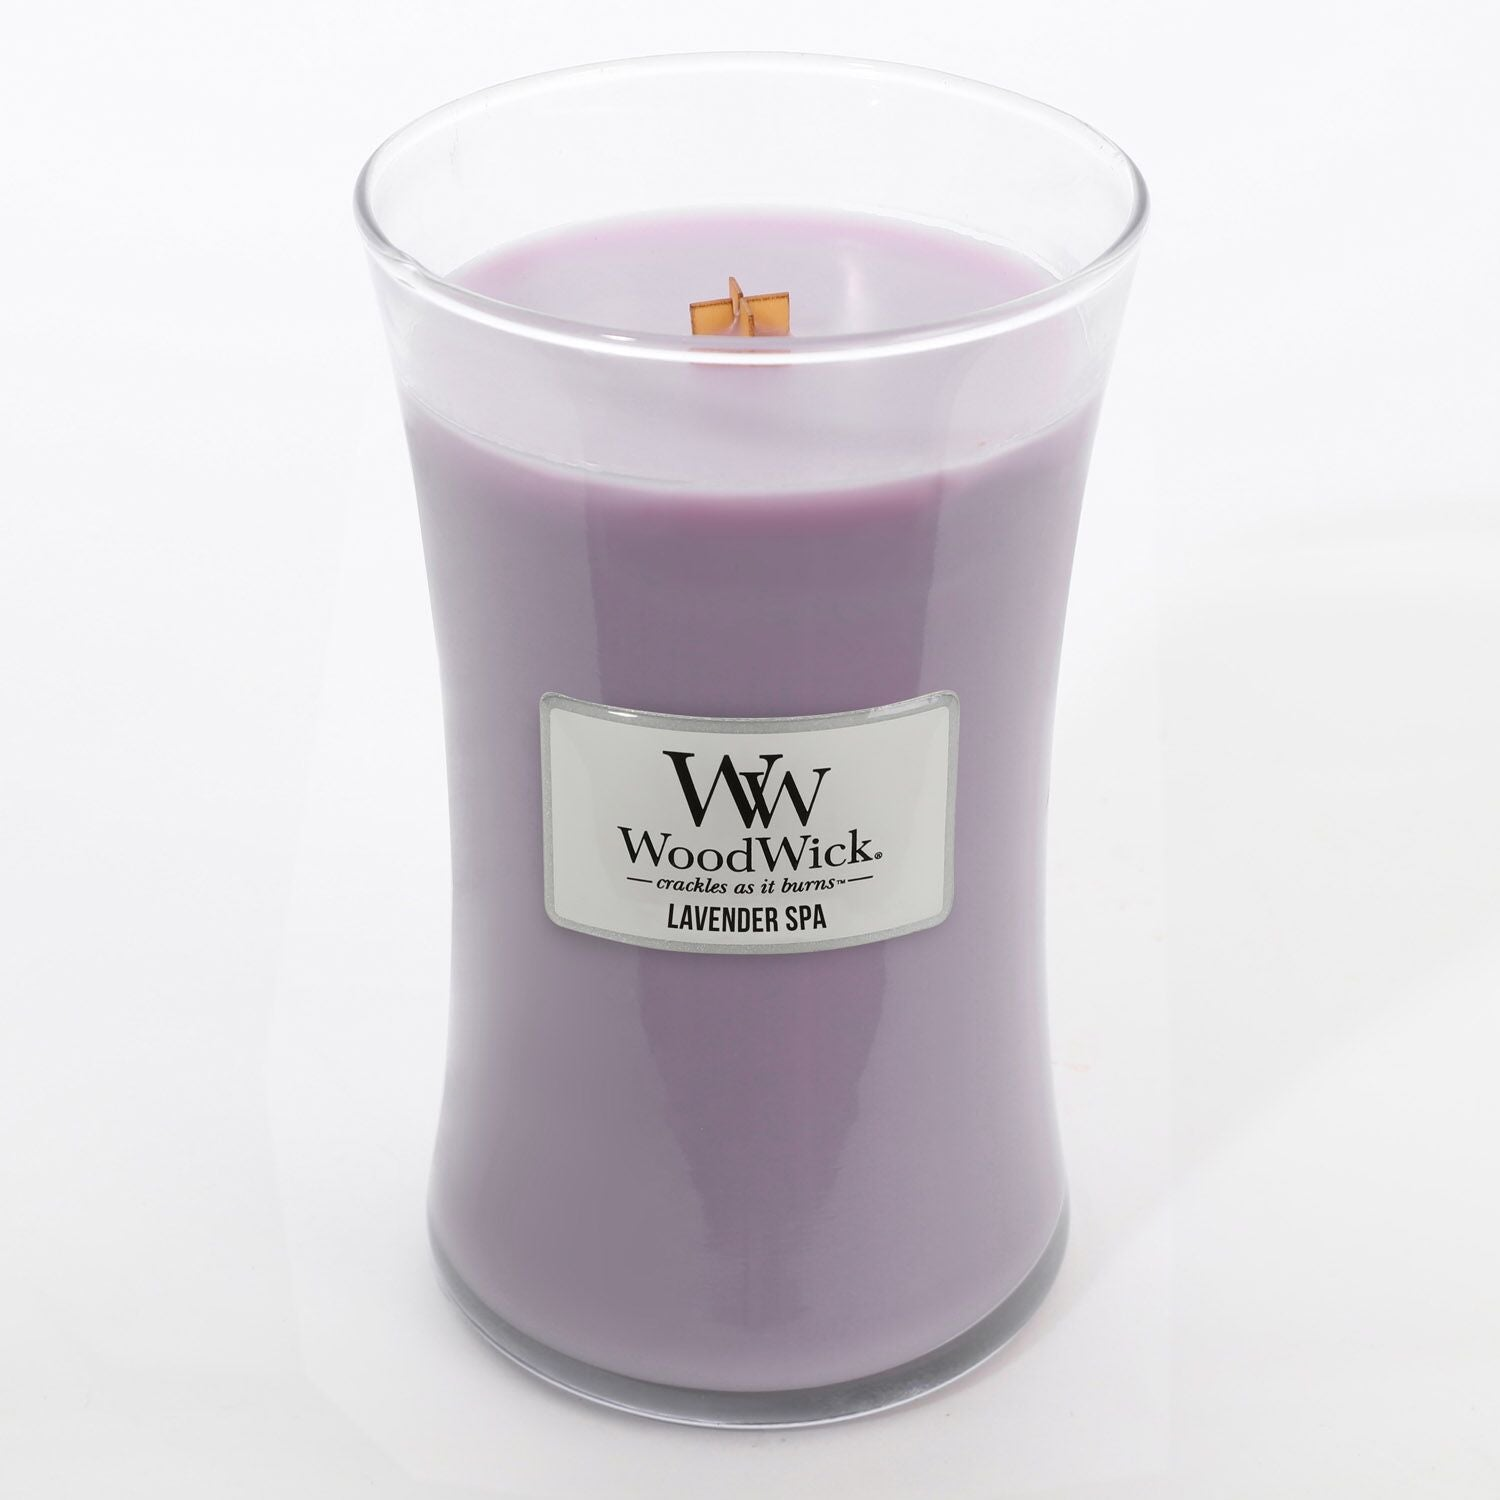 Large Lavender Spa Scented WoodWick Soy Candle